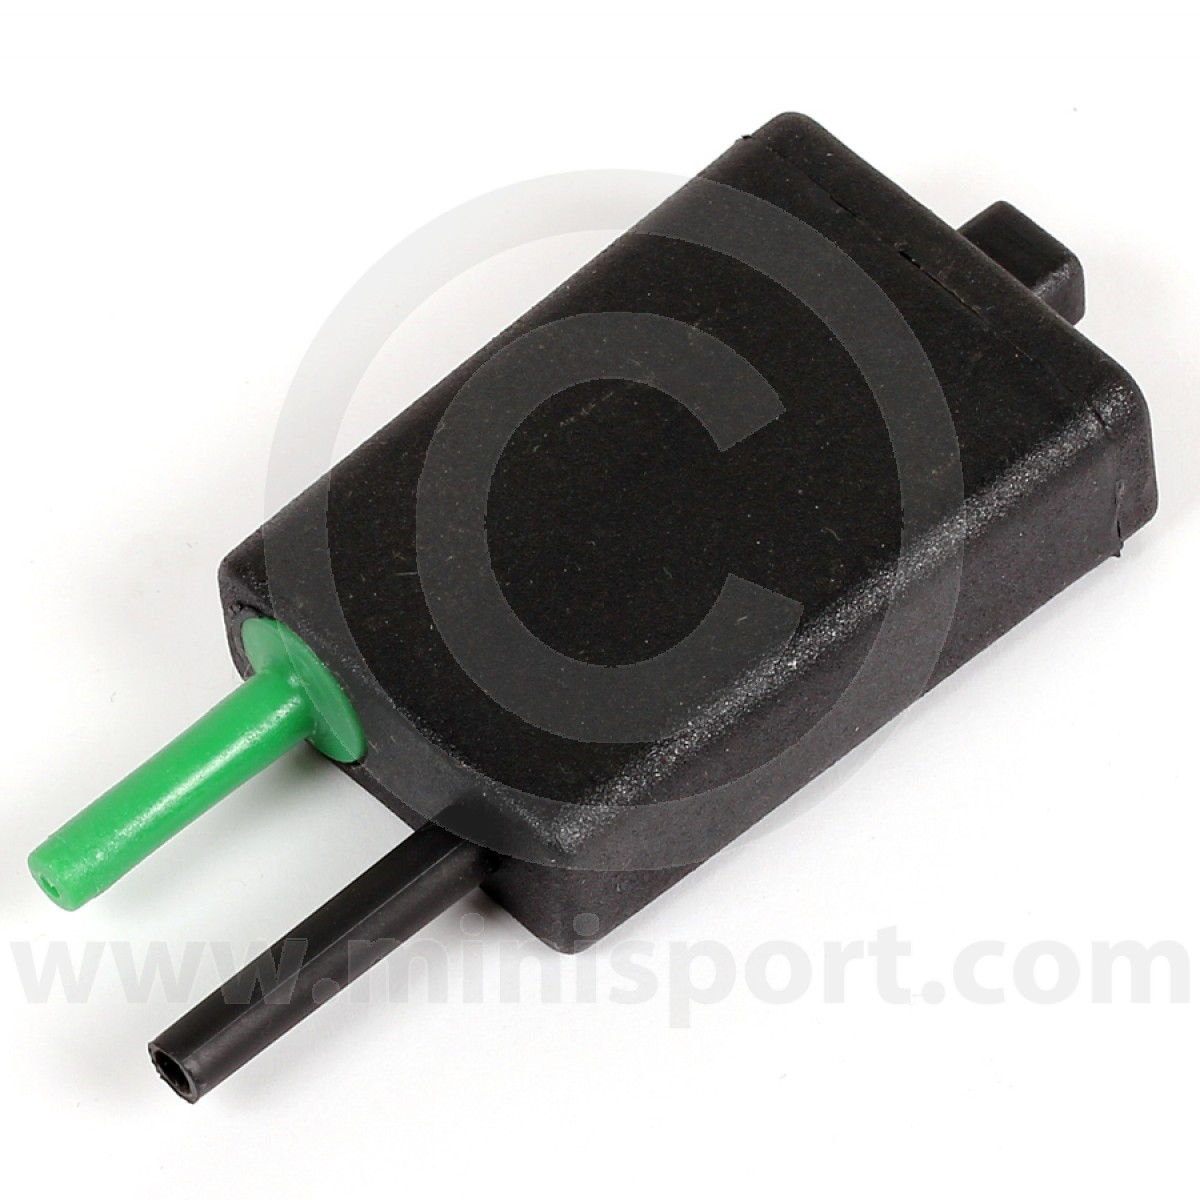 NPC10001 Mini Fuel Trap - SPi